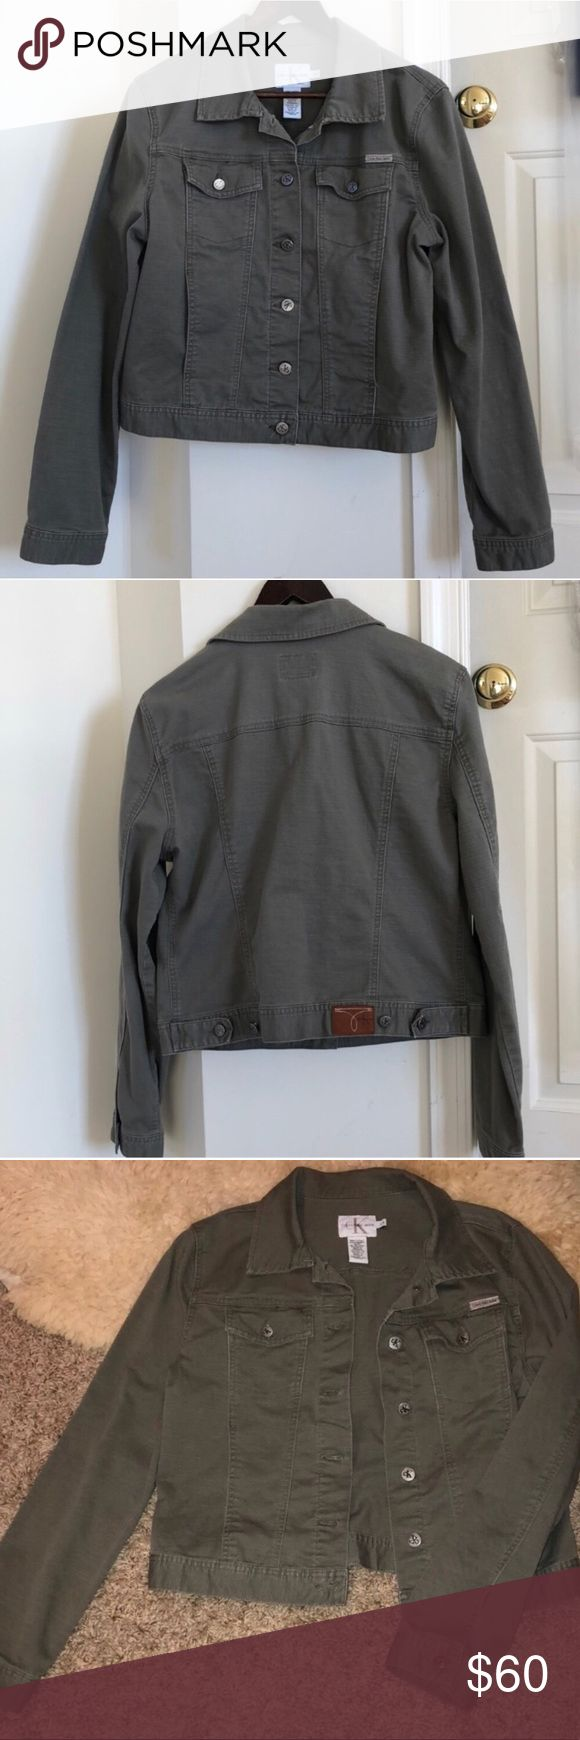 Calvin Klein Army Green Denim Style Jacket